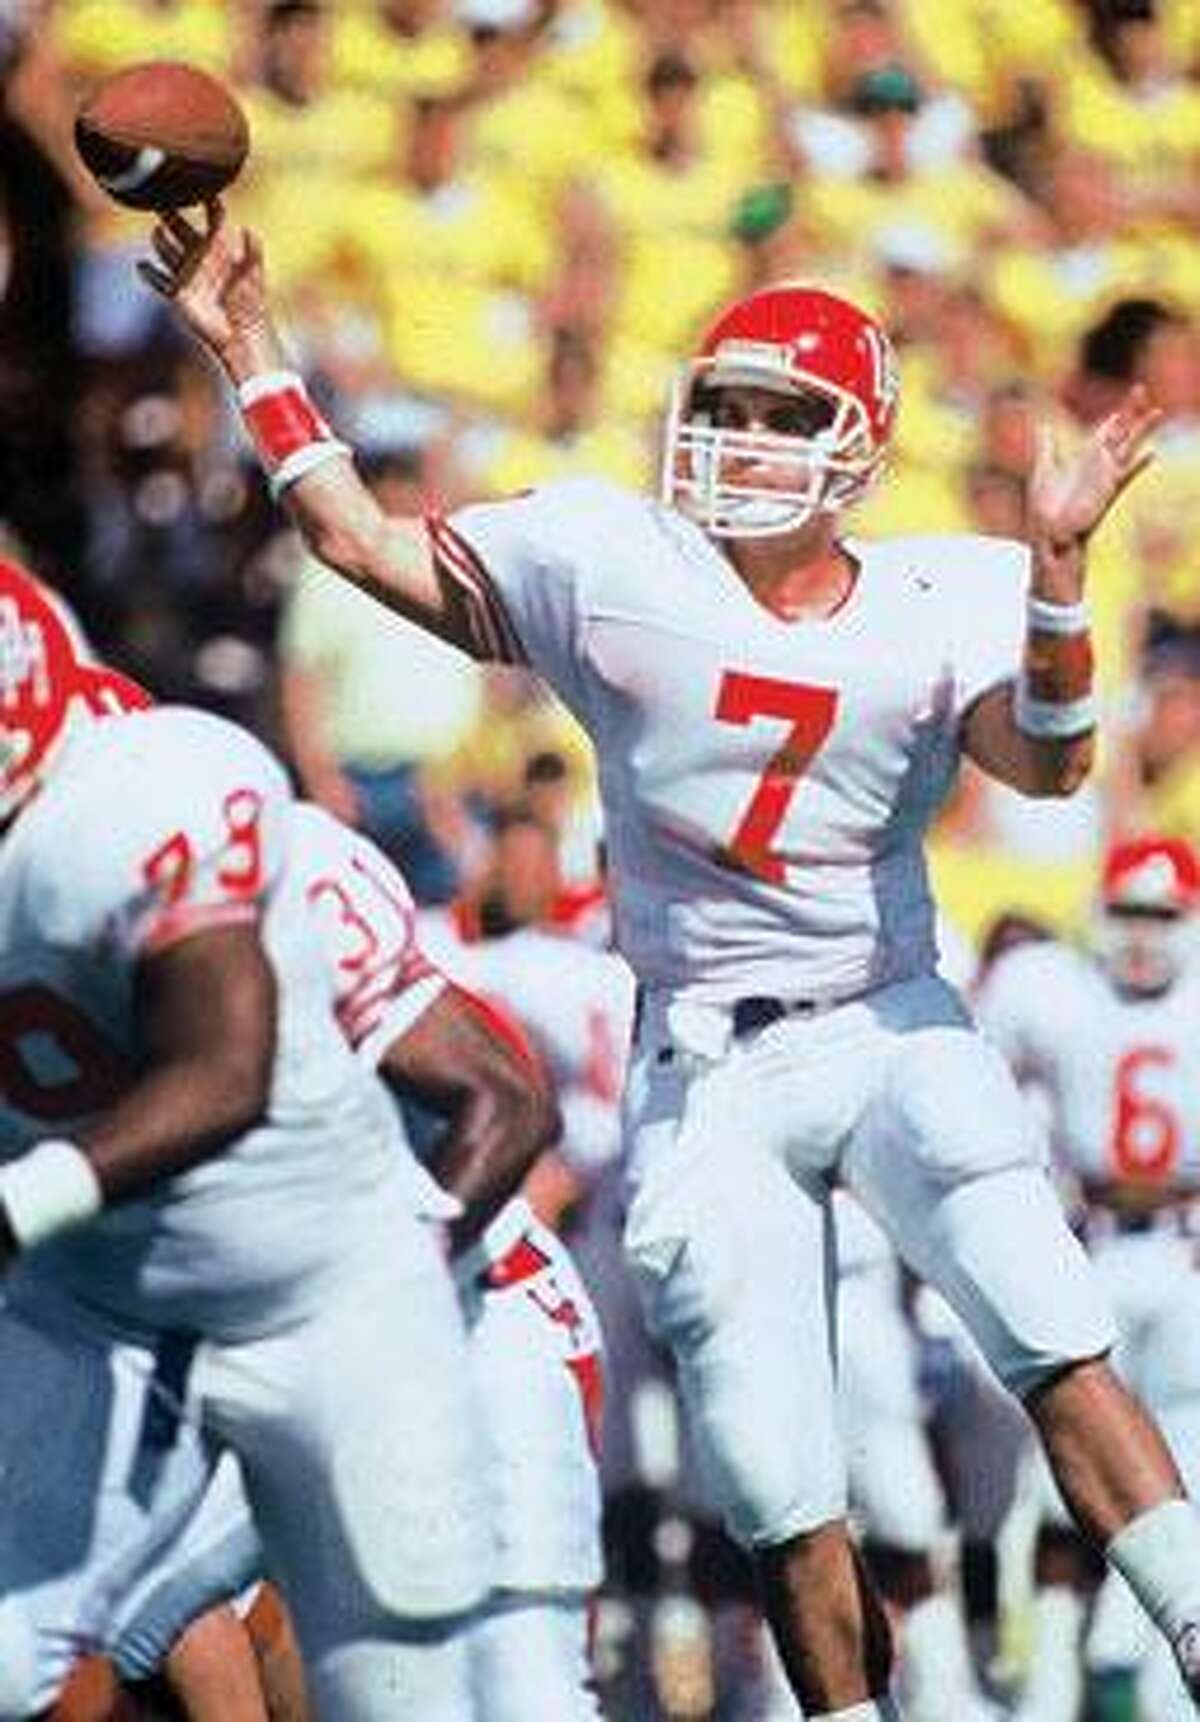 David Klingler, who played football for the University of Houston and the Cincinnati Bengals, was voted to the Southwest Conference Hall of Fame.